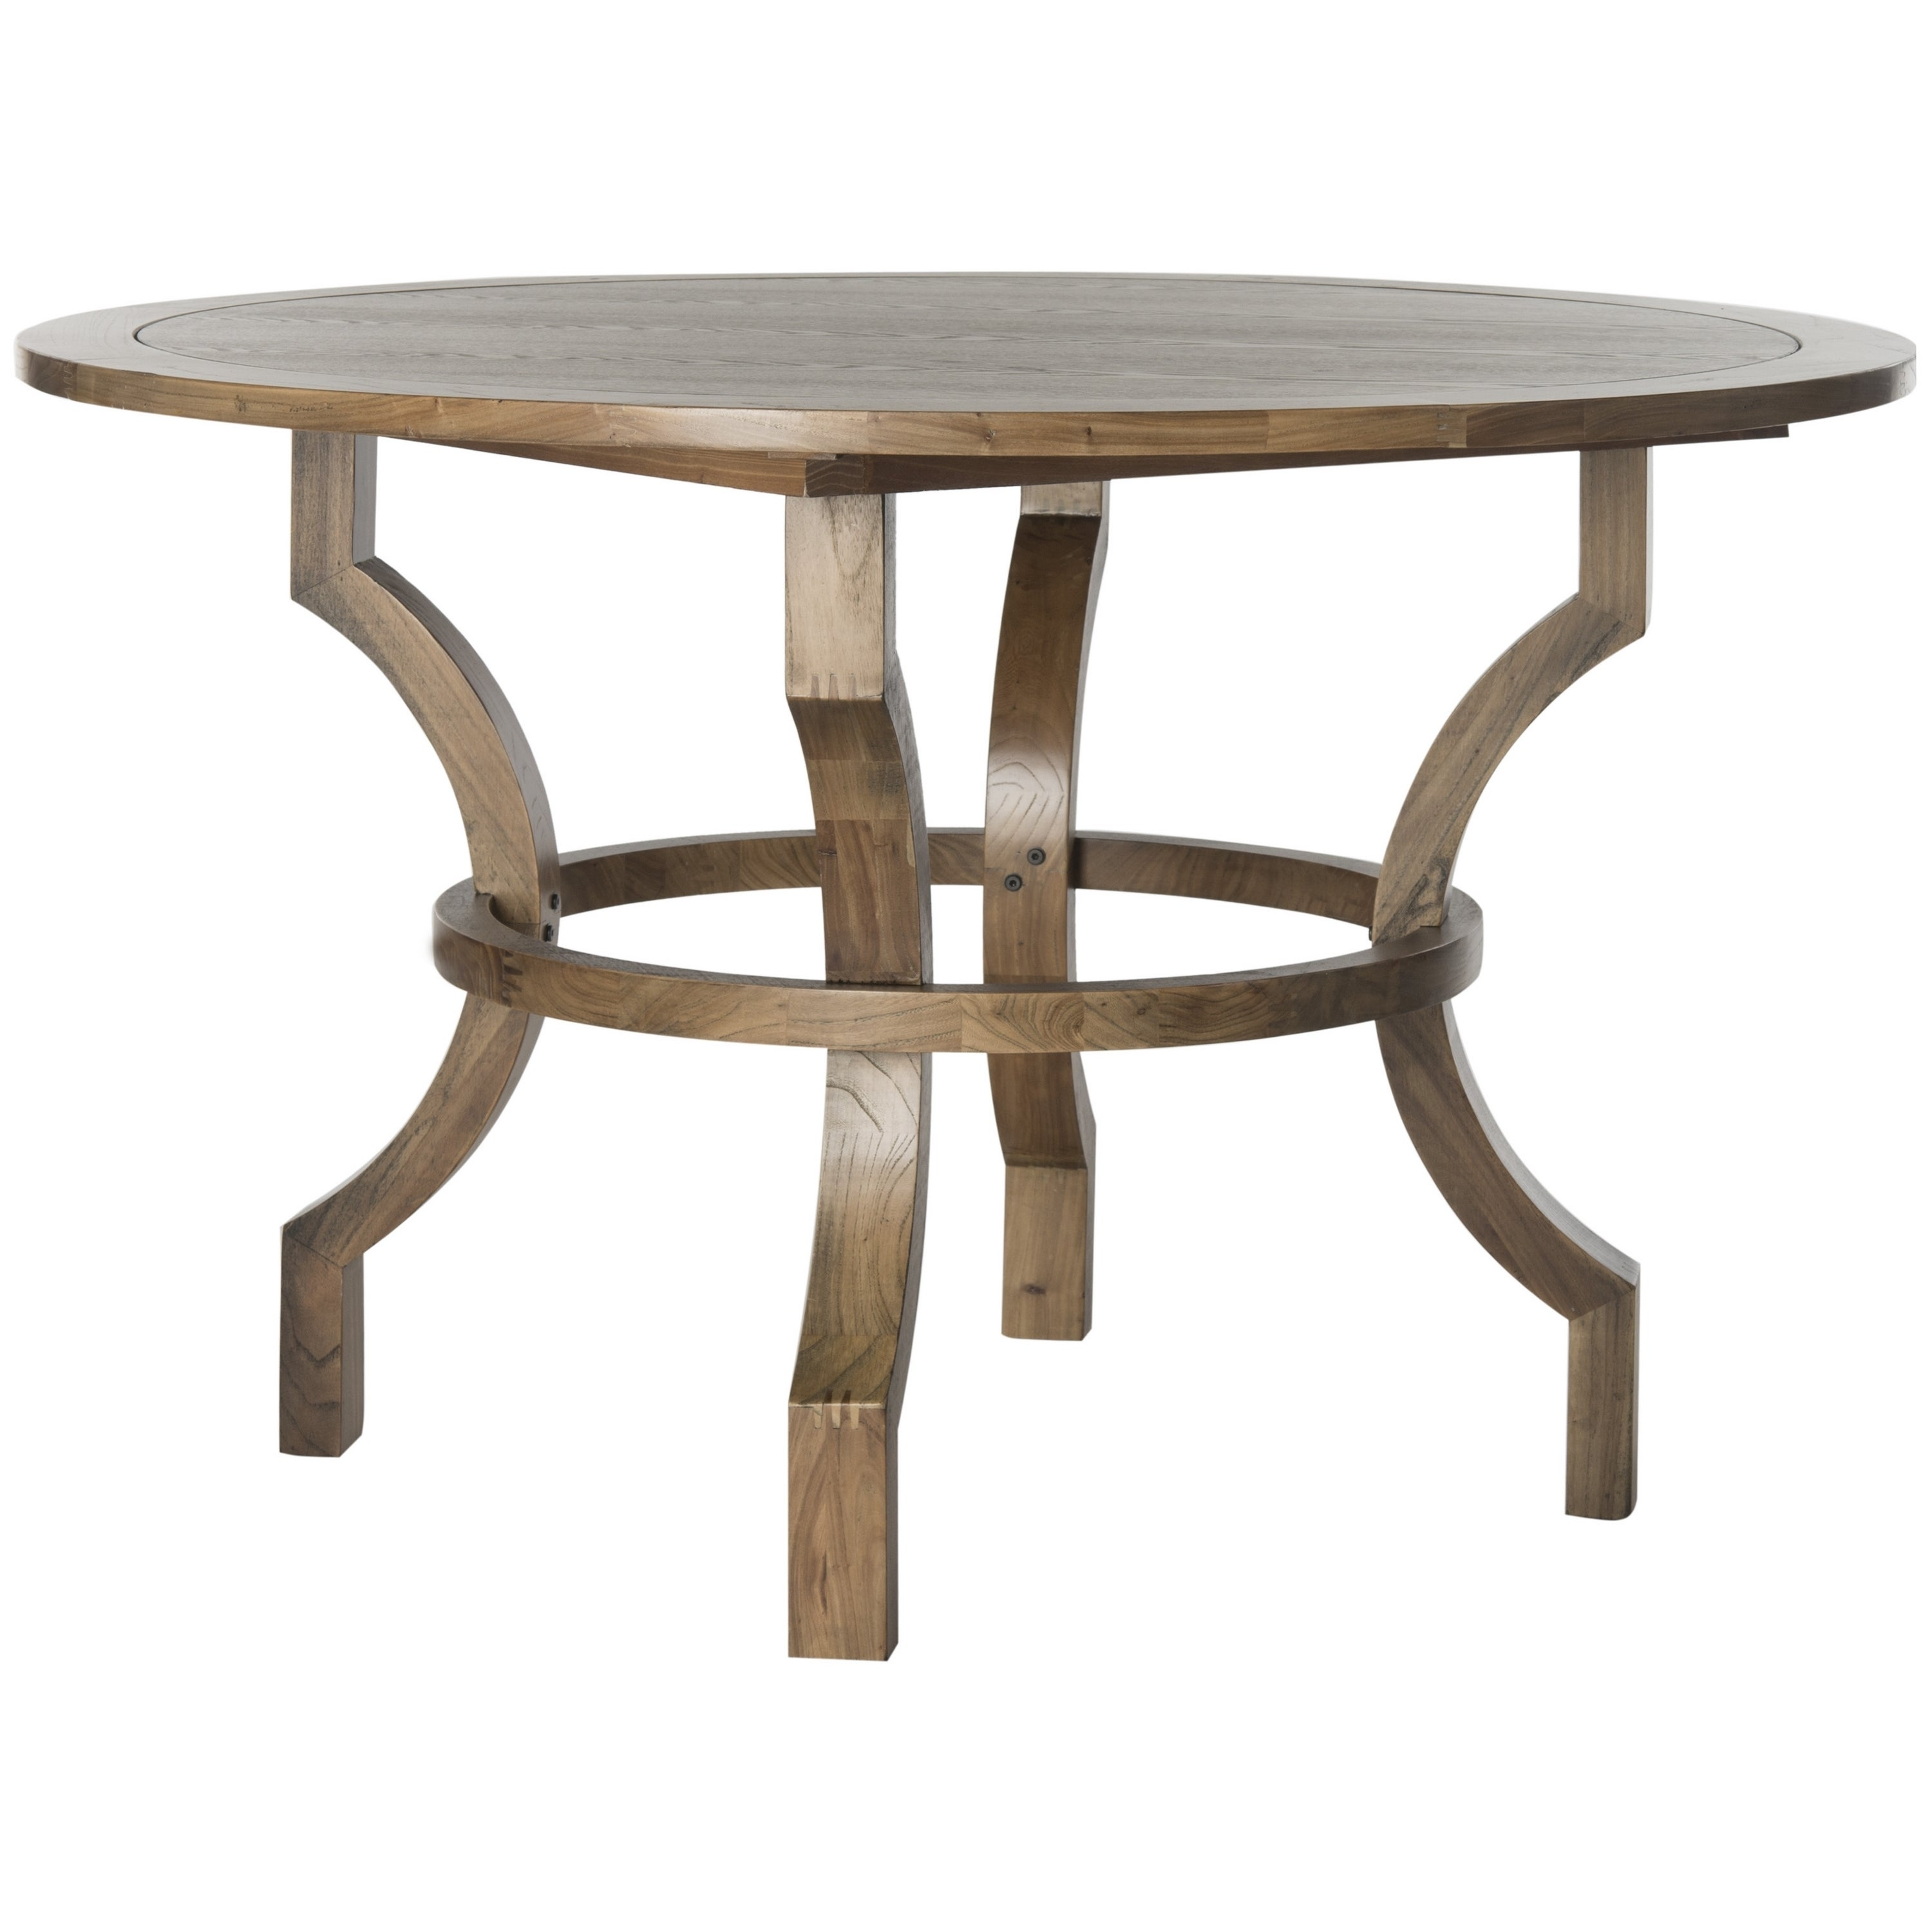 Safavieh Ludlow Oak Round Dining Table Free Shipping Today 9542207